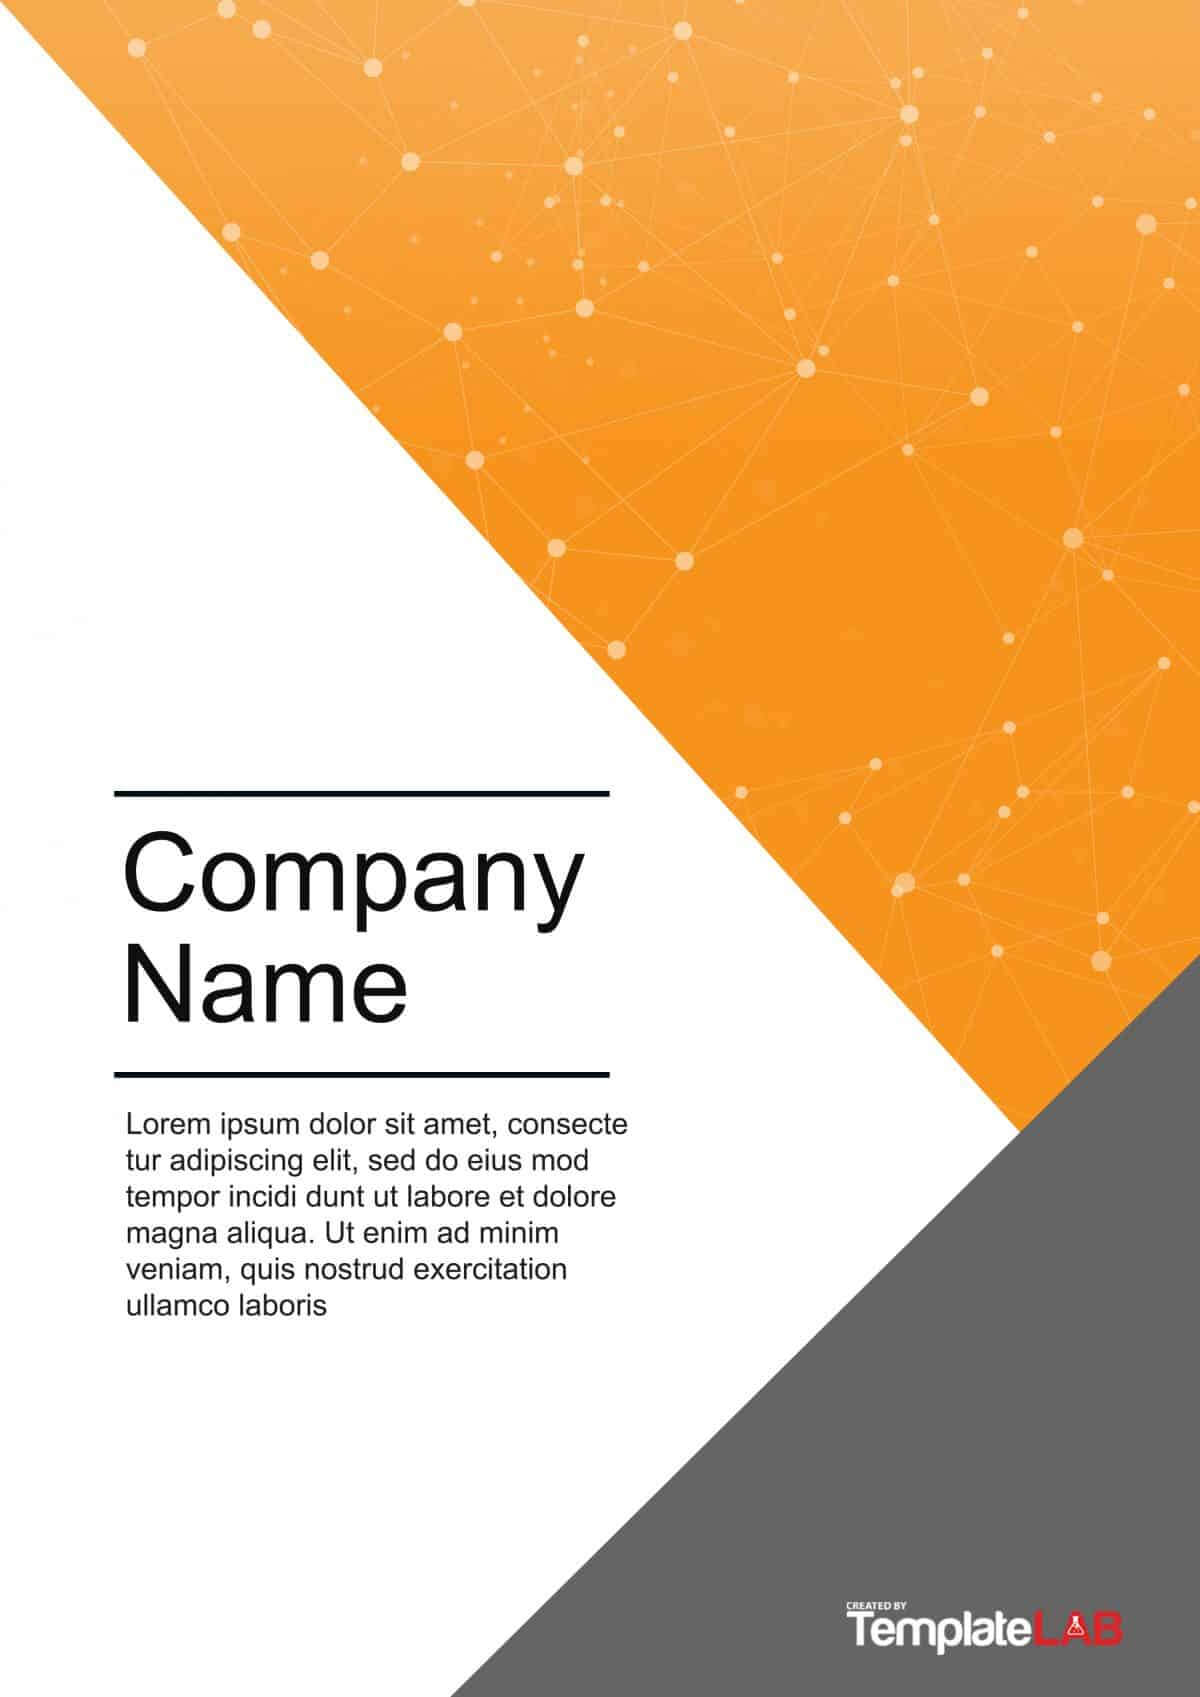 39 Amazing Cover Page Templates (Word + Psd) ᐅ Template Lab Pertaining To Word Title Page Templates